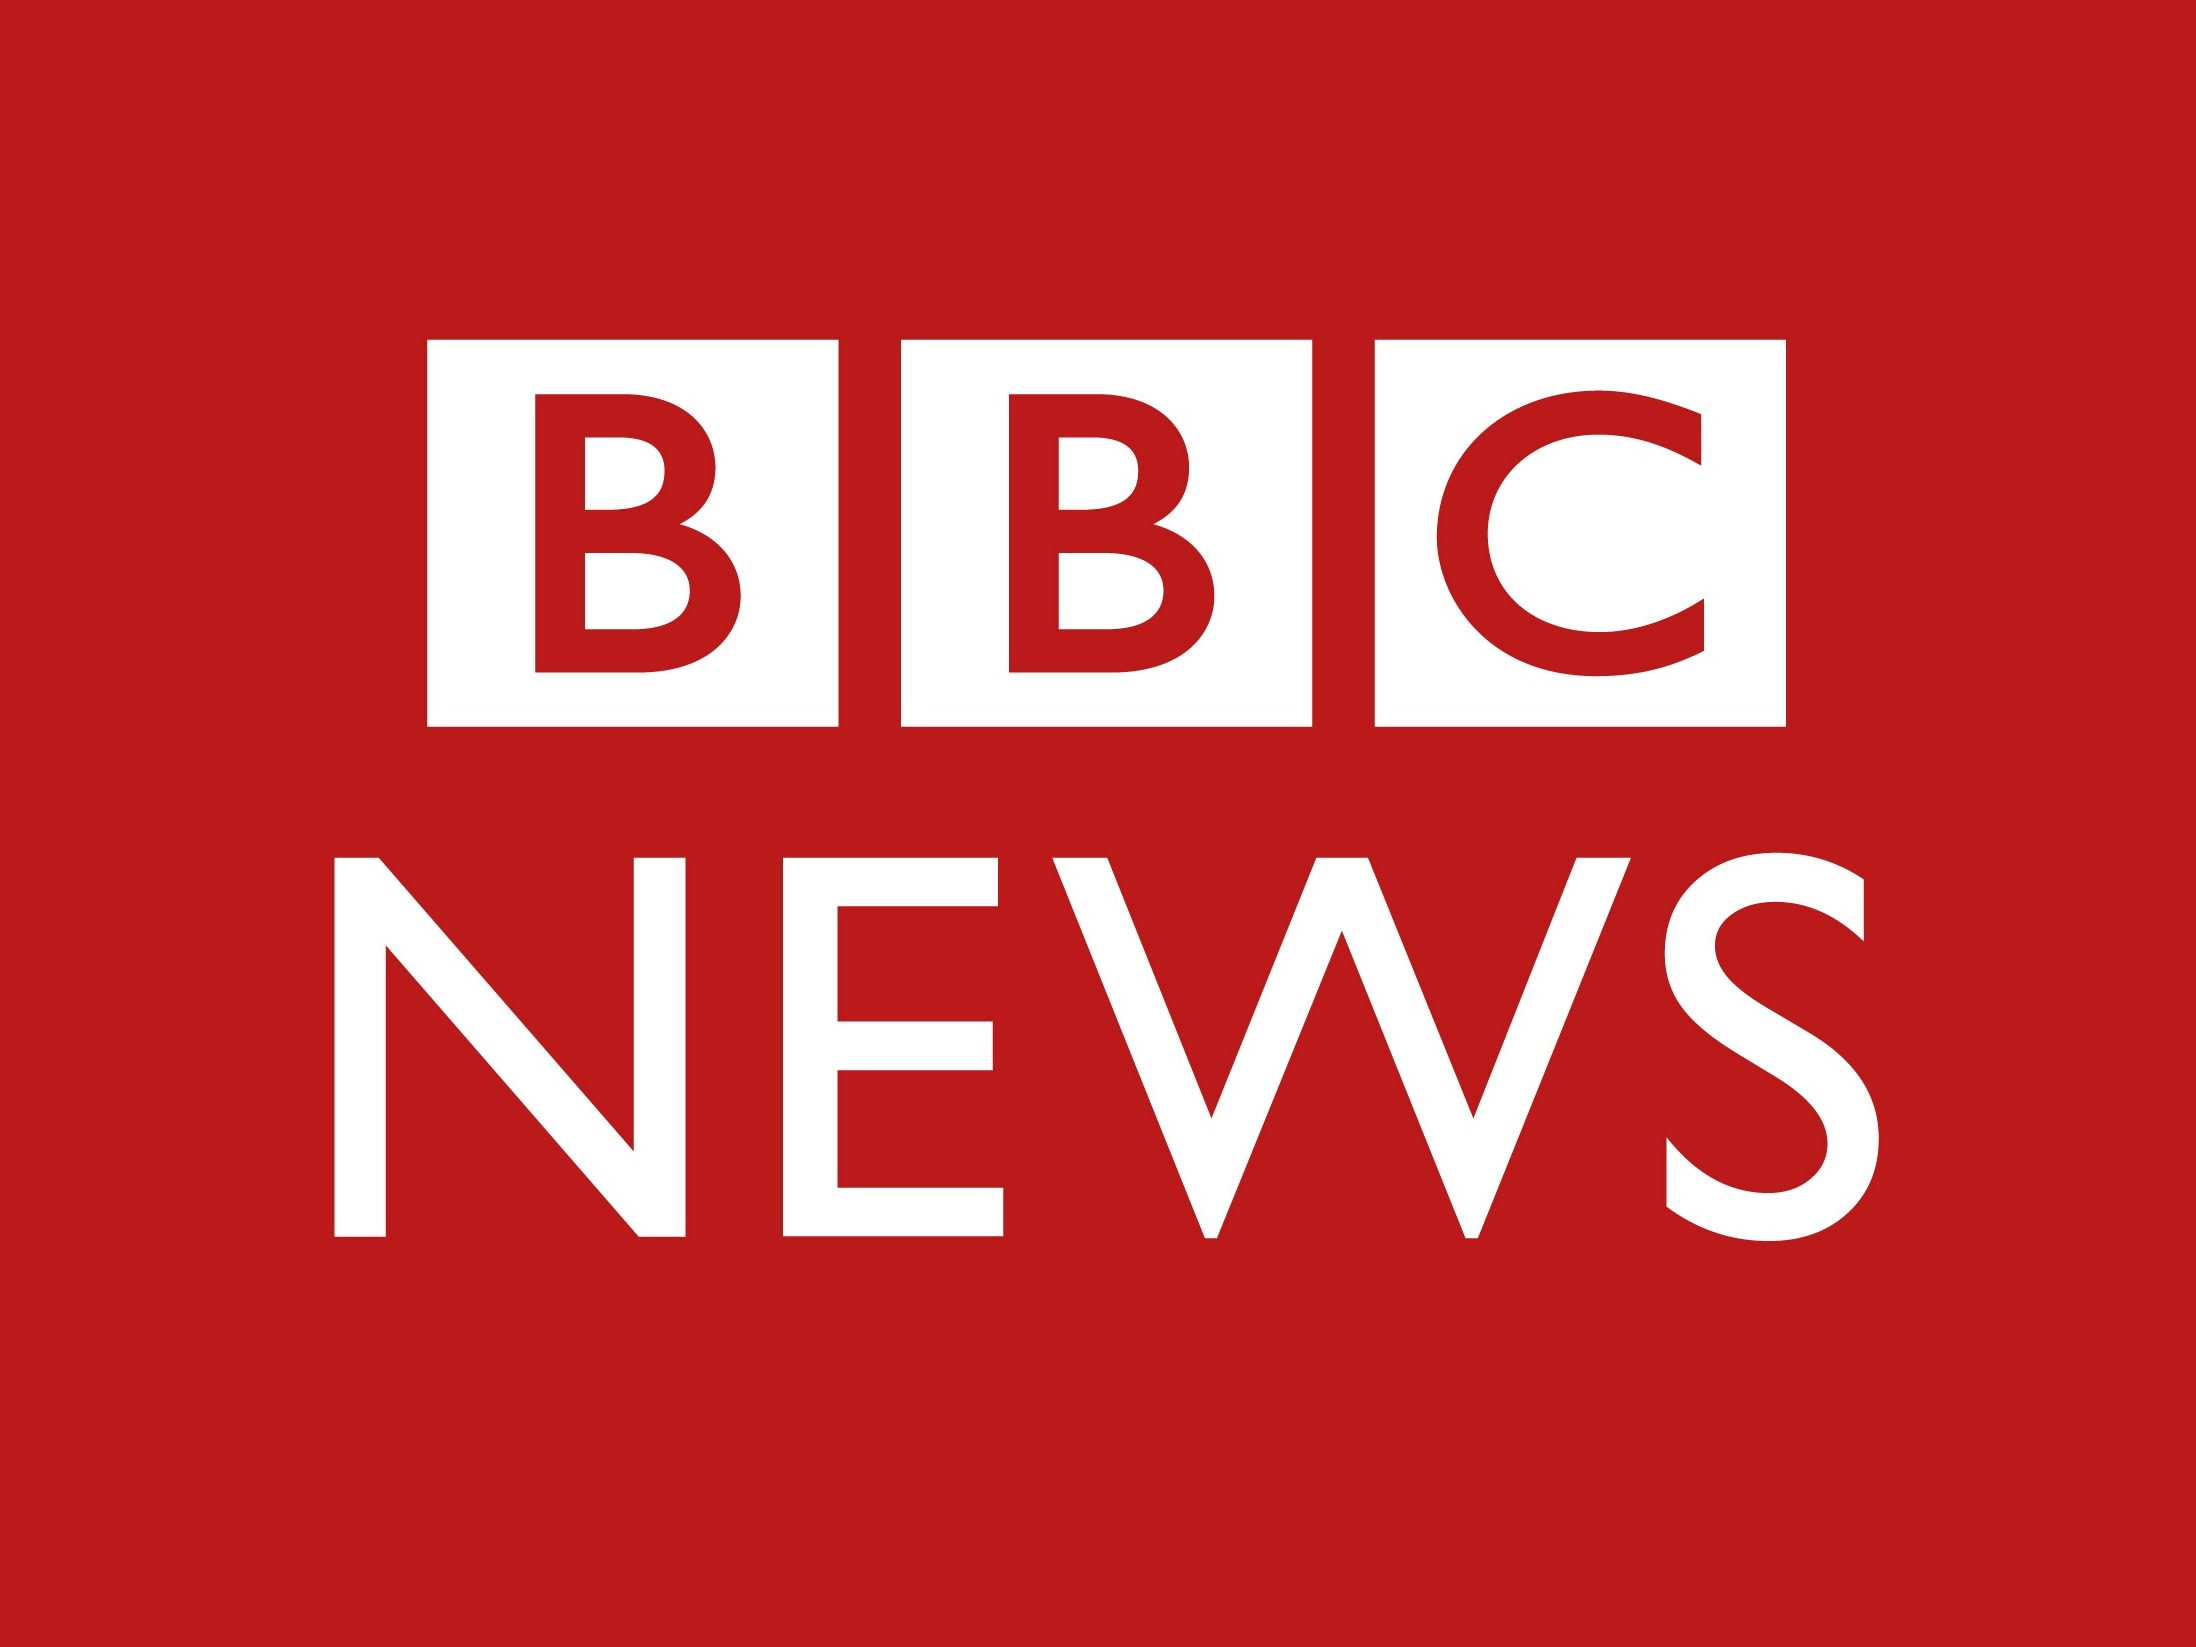 BBC NEWS Rory Lewis Soldiery